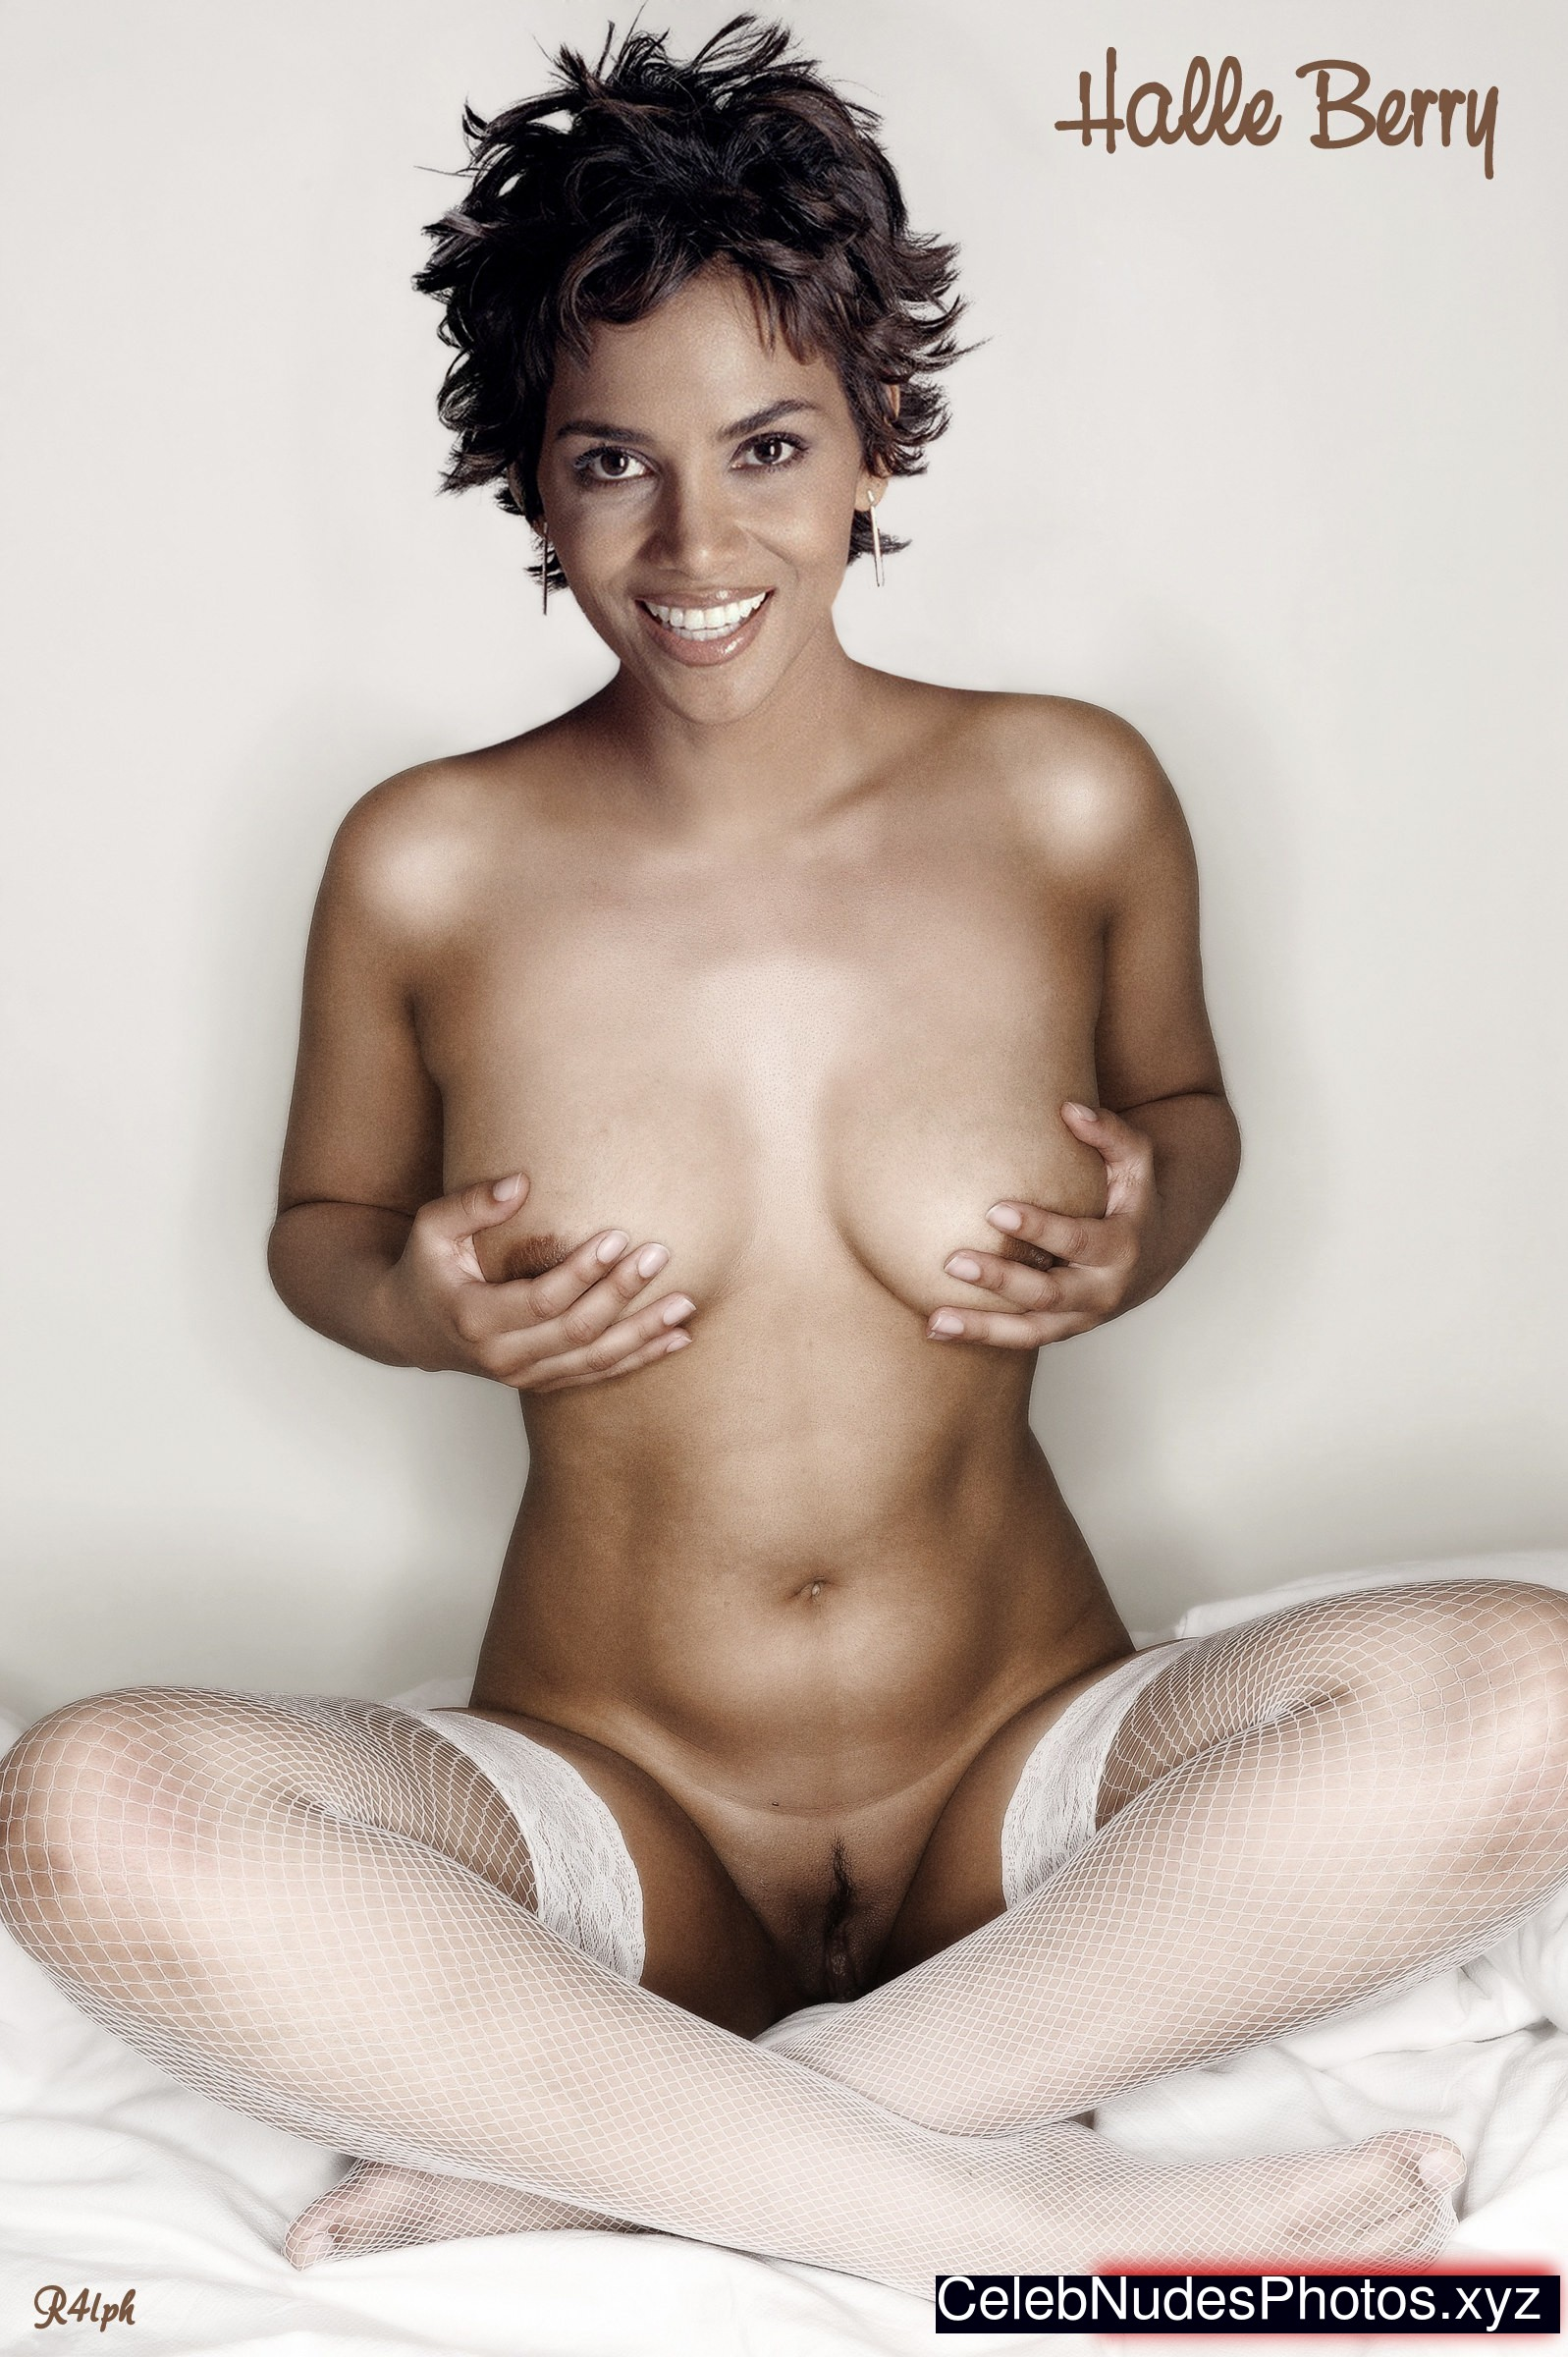 Halle Berry Nude Celeb Pic sexy 10